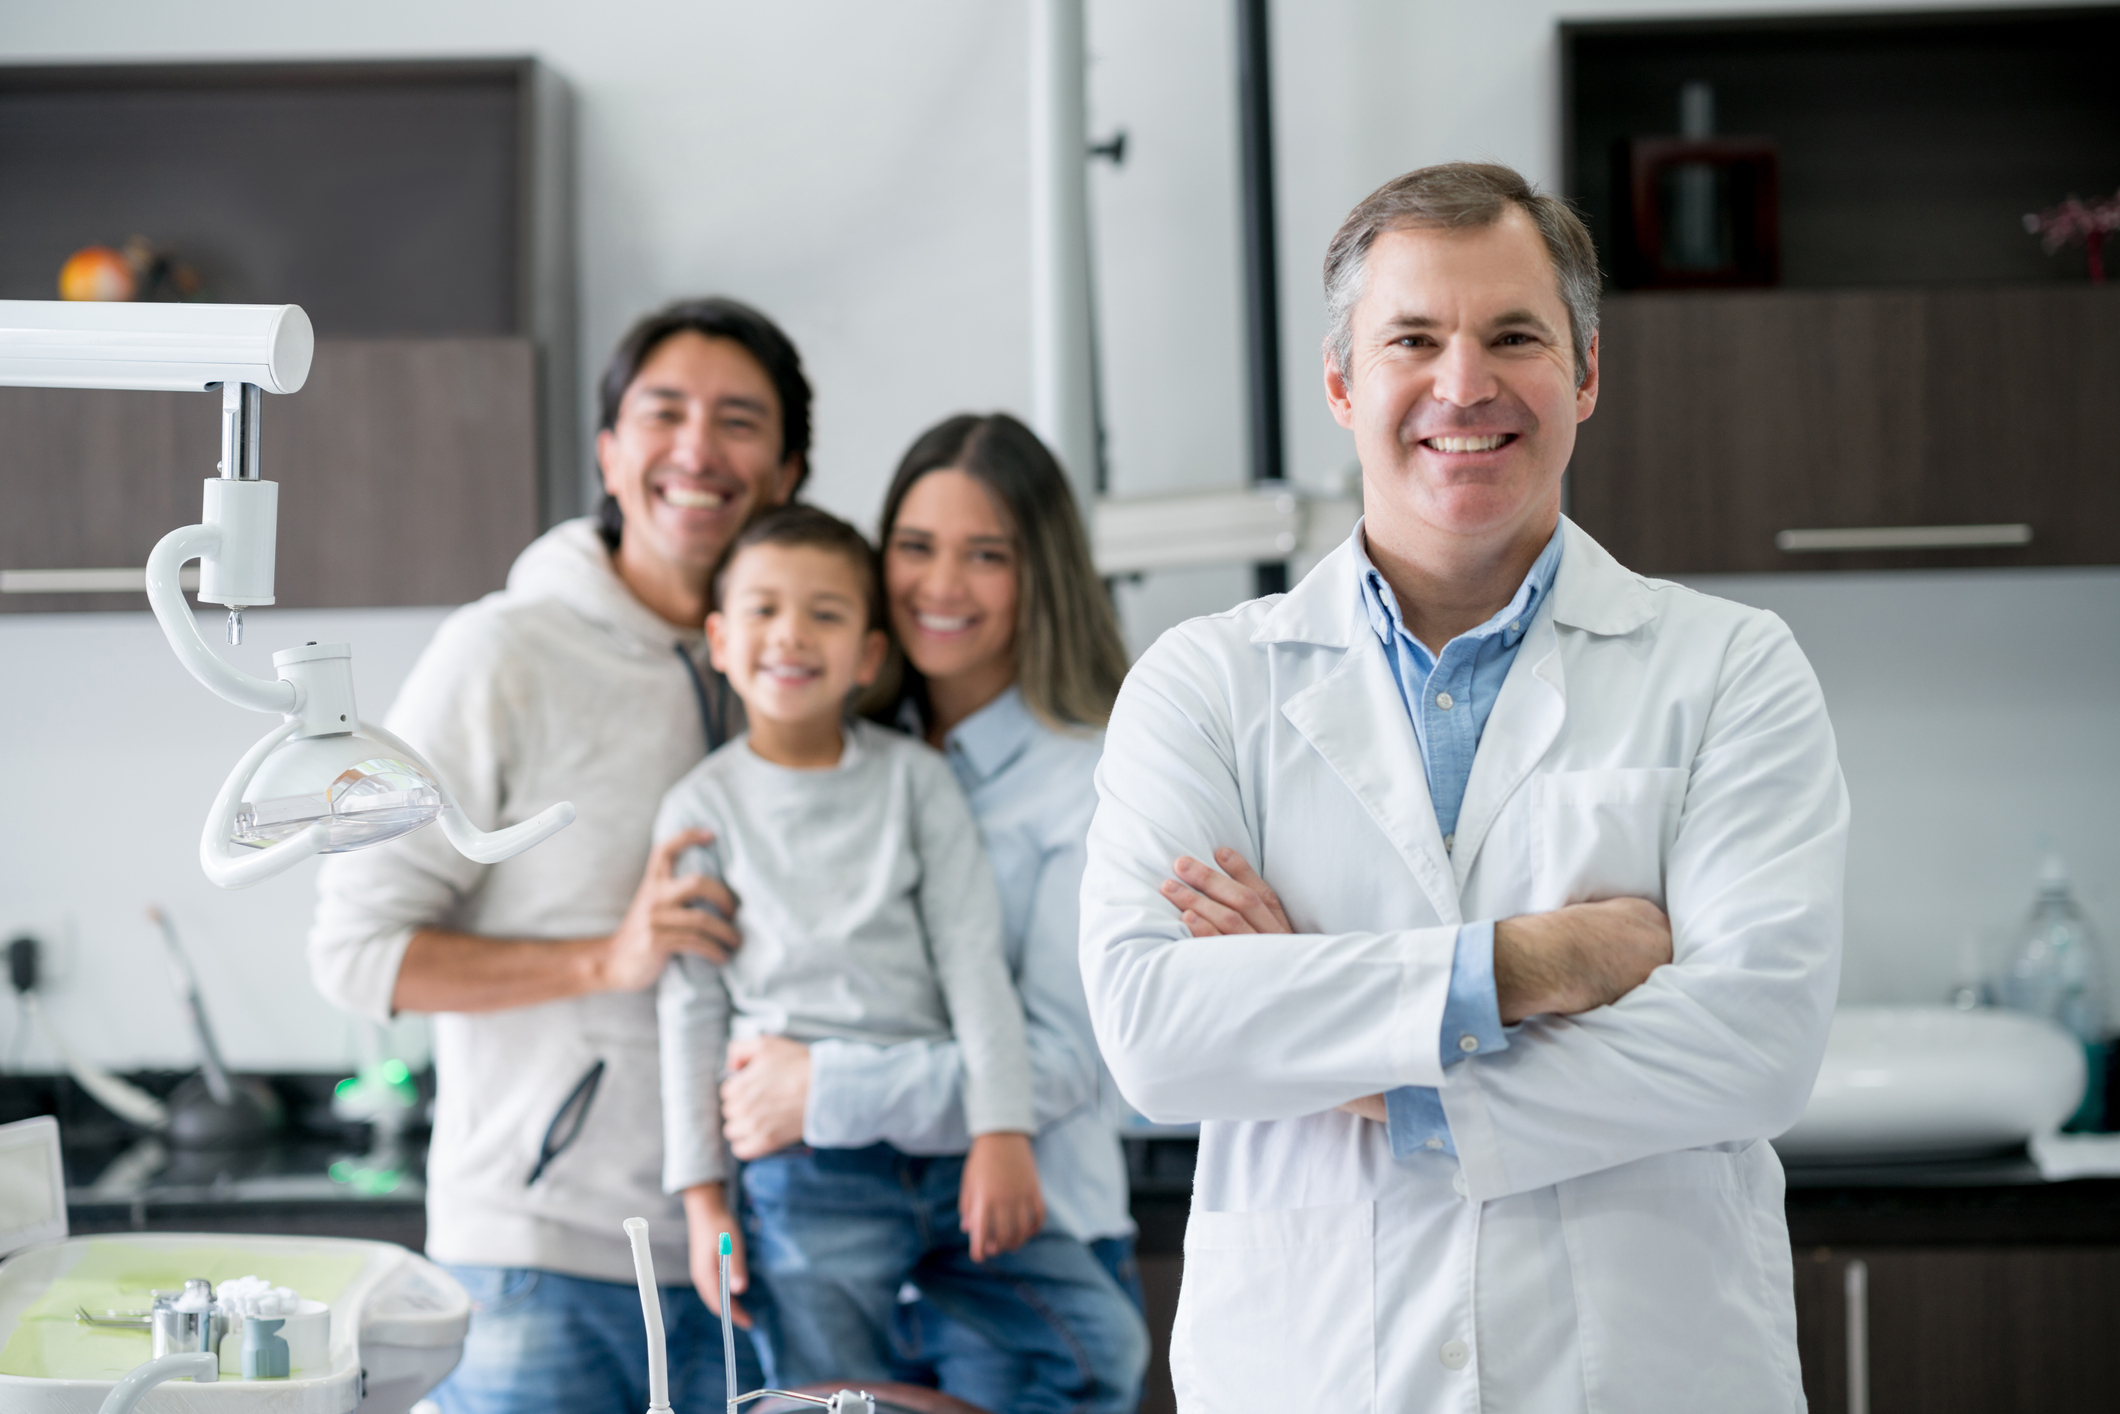 Dentist at the office looking very happy with a family at the background